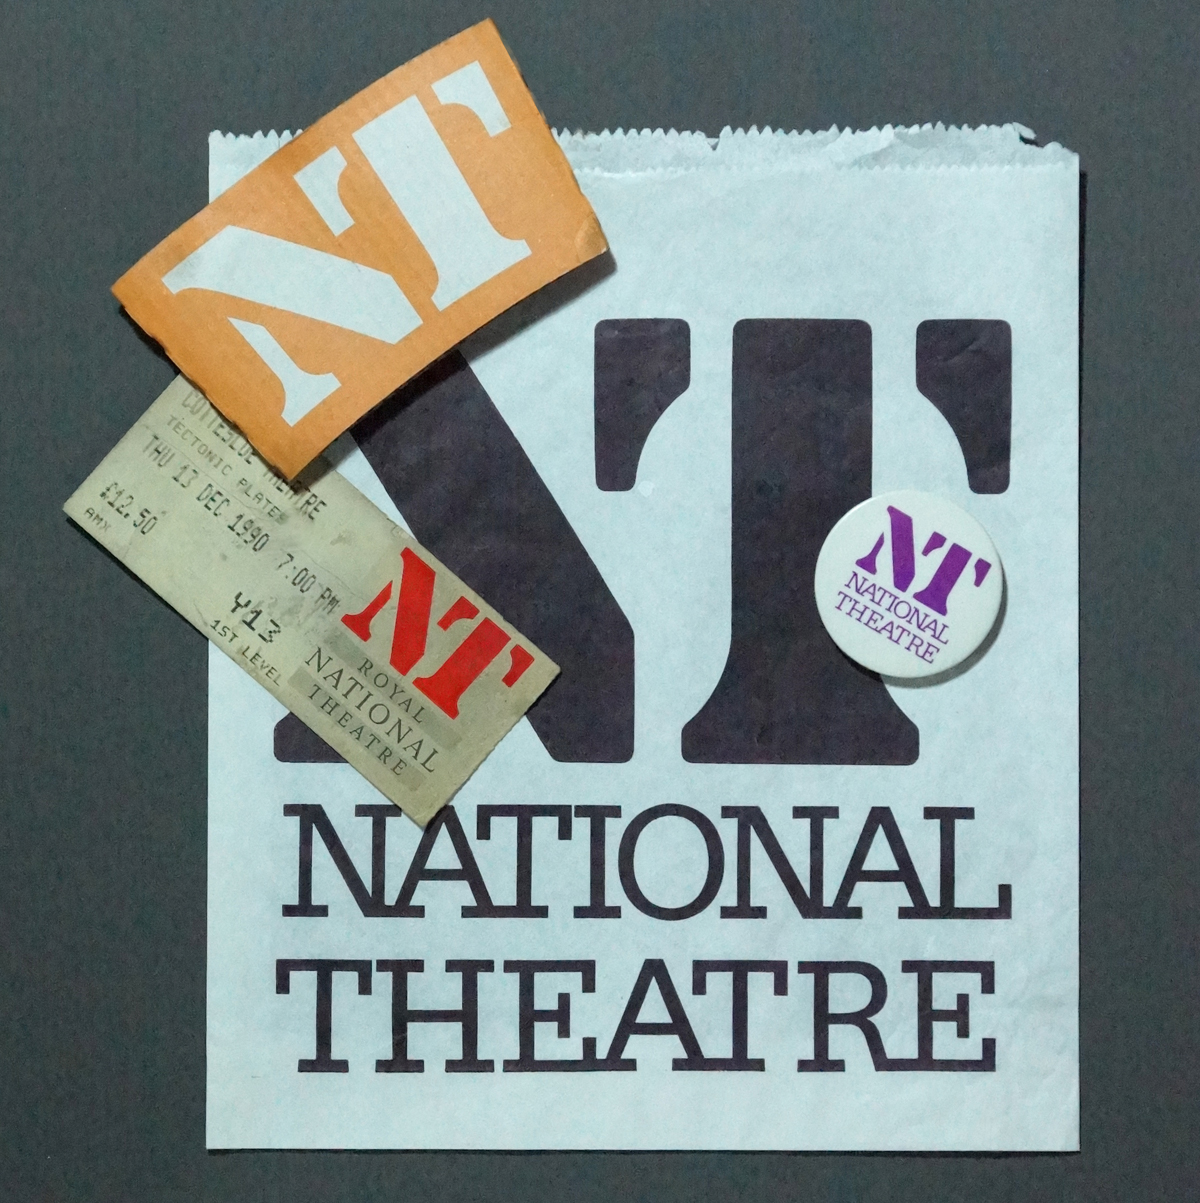 national theatre logo in use